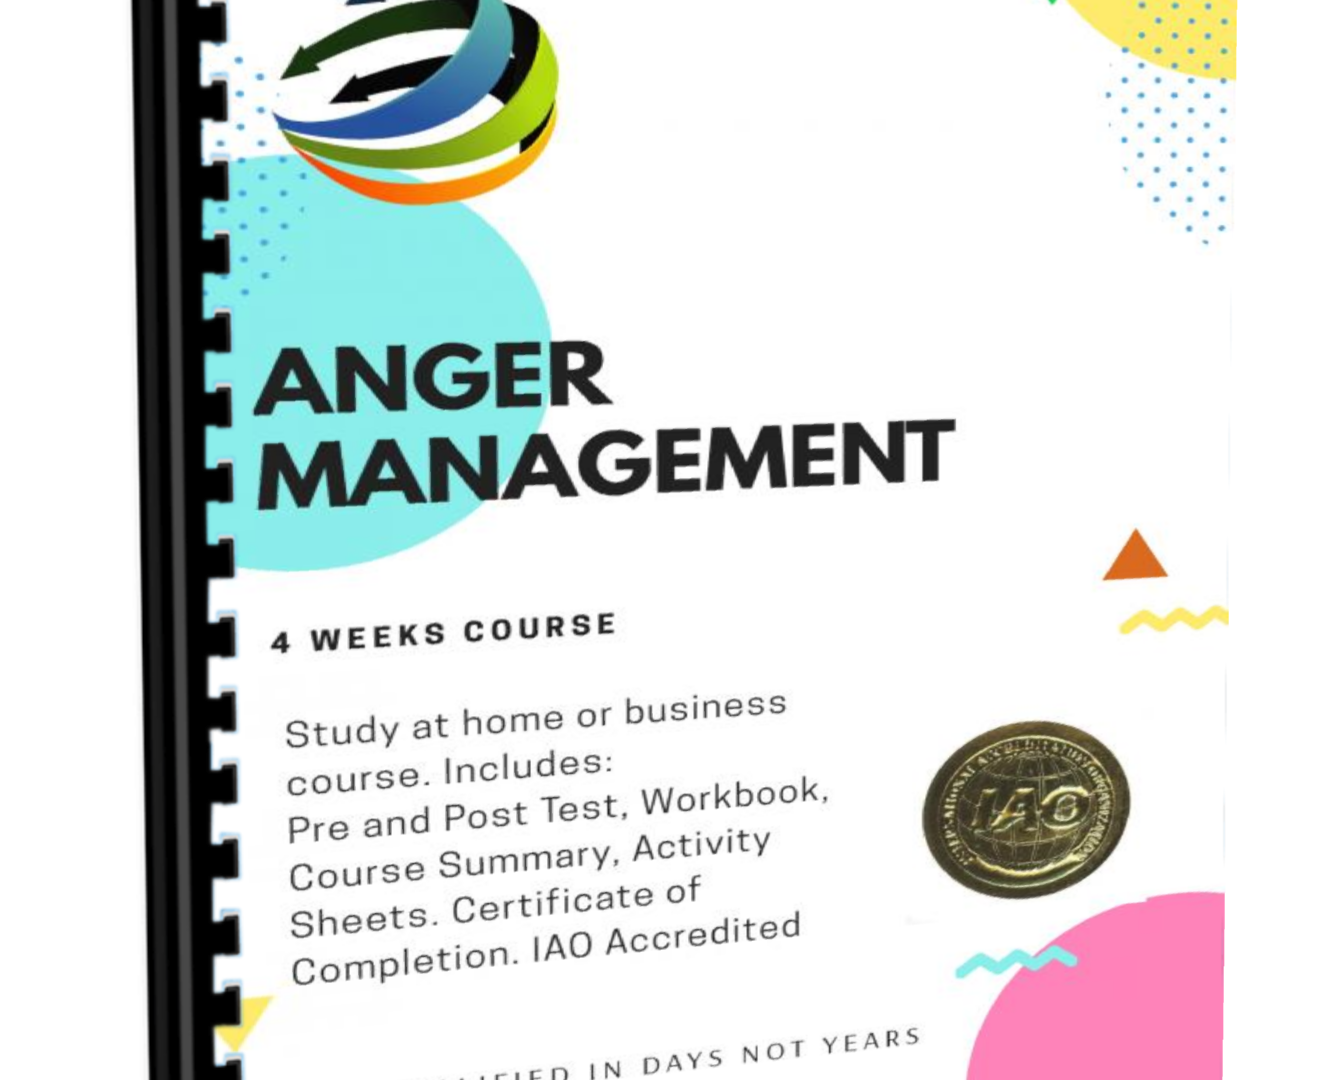 anger management course 2.png